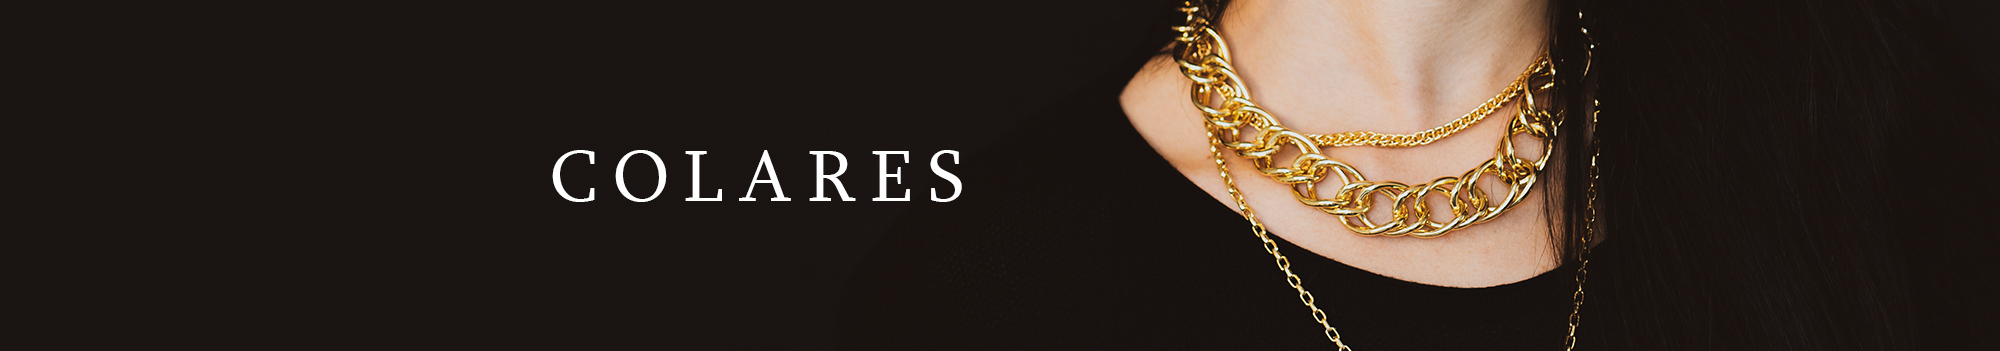 Banner Colares